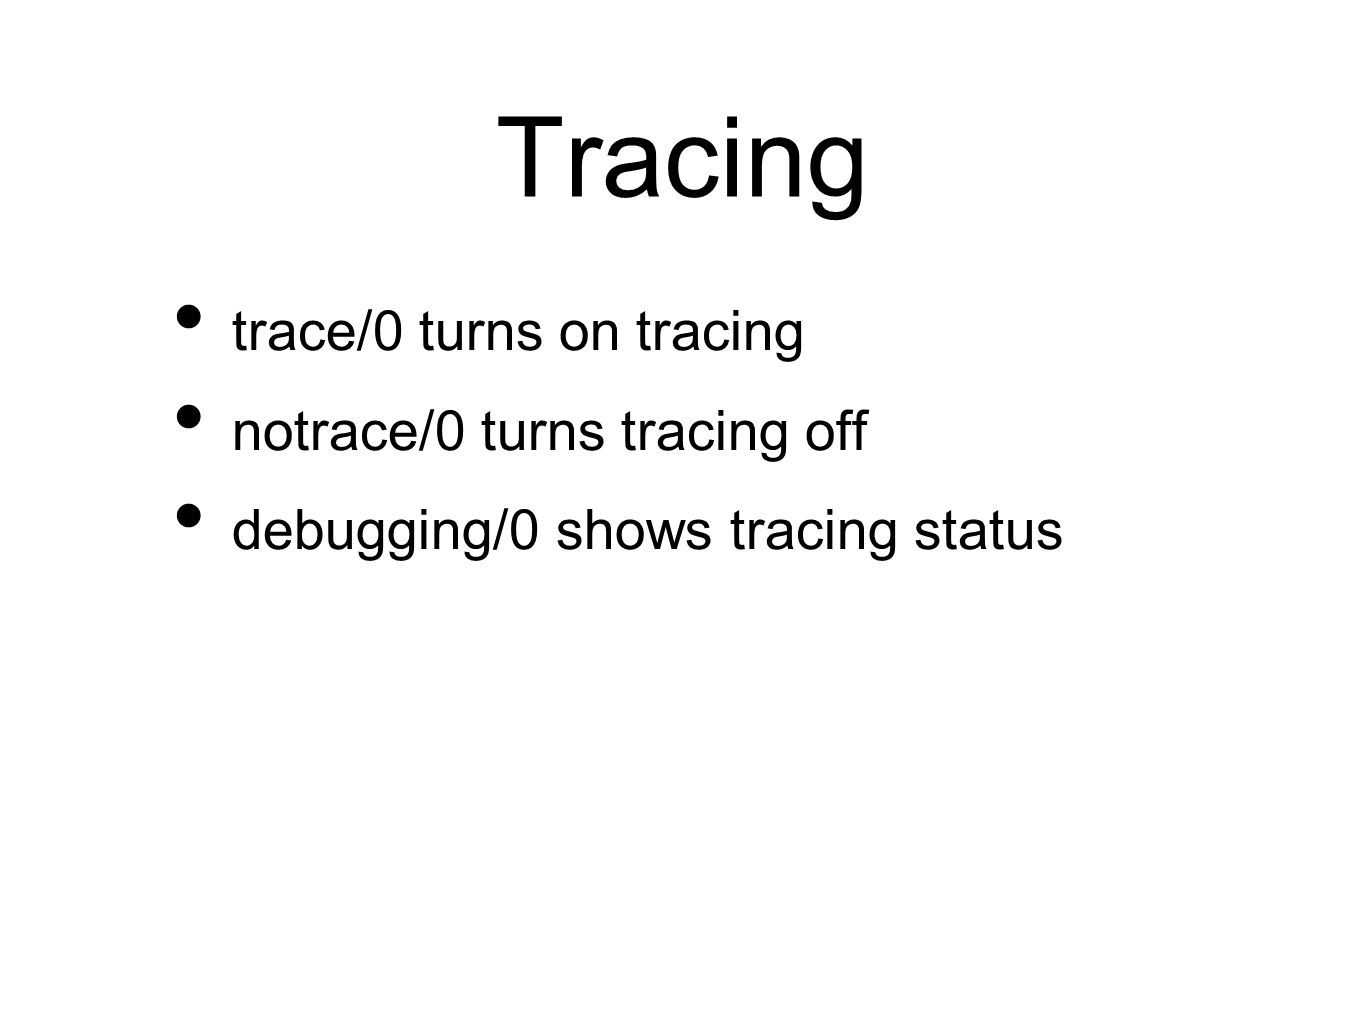 Tracing trace/0 turns on tracing notrace/0 turns tracing off debugging/0 shows tracing status